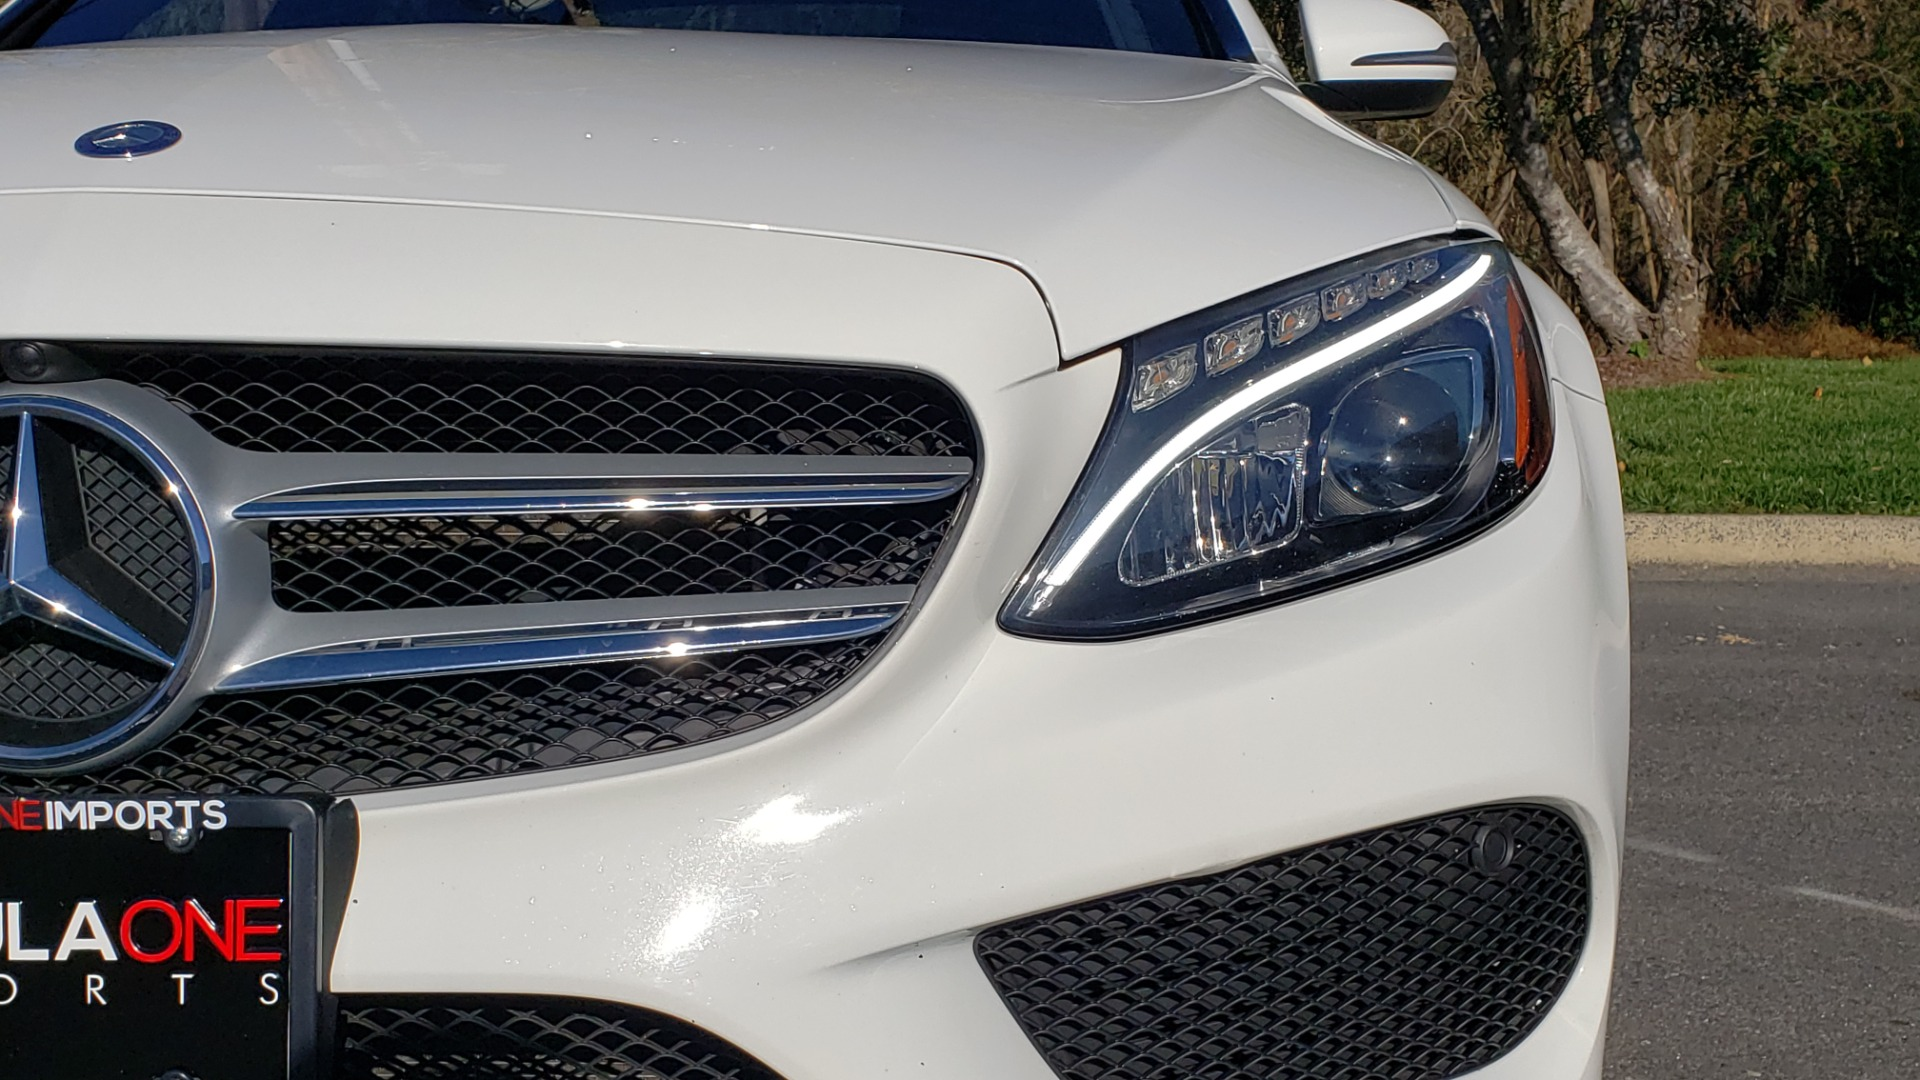 Used 2017 Mercedes-Benz C-CLASS C 300 SPORT / PREM PKG / PANO-ROOF / NAV / HTD STST / REARVIEW for sale Sold at Formula Imports in Charlotte NC 28227 16